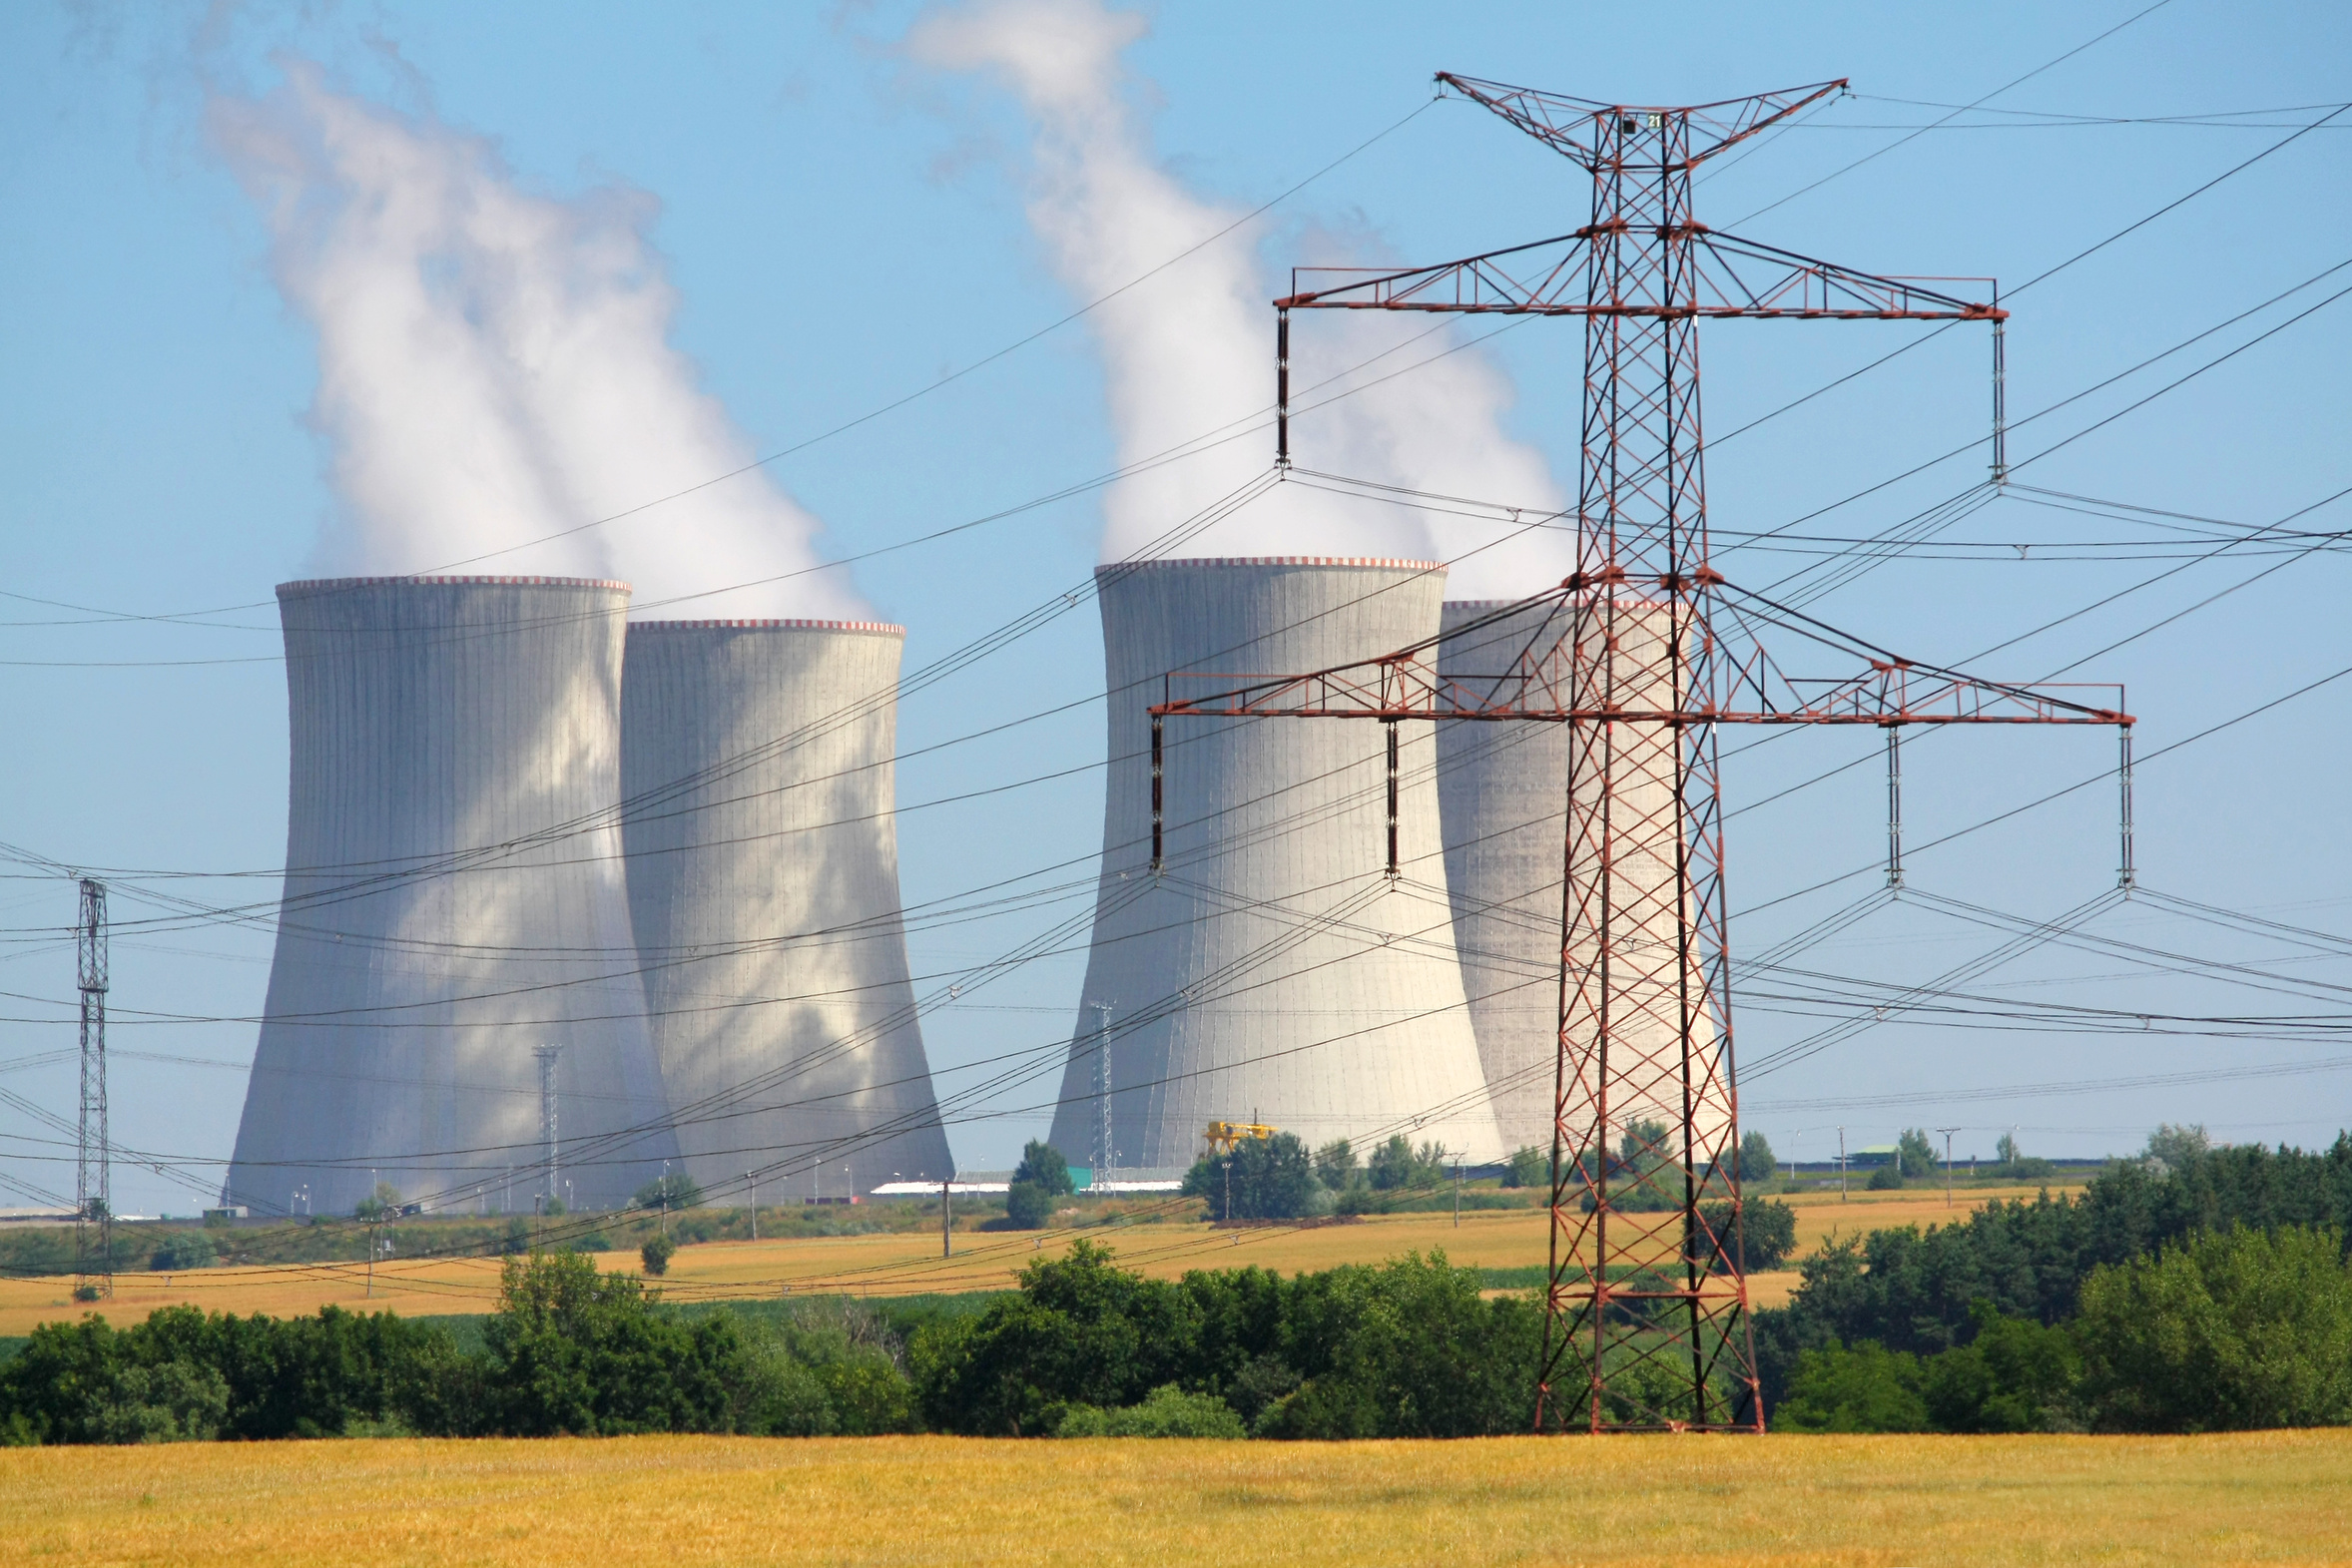 nuclear industry business plan Matrix business concepts is the leading expert in nuclear project management built on the experience of cost control experts from within the nuclear industry.